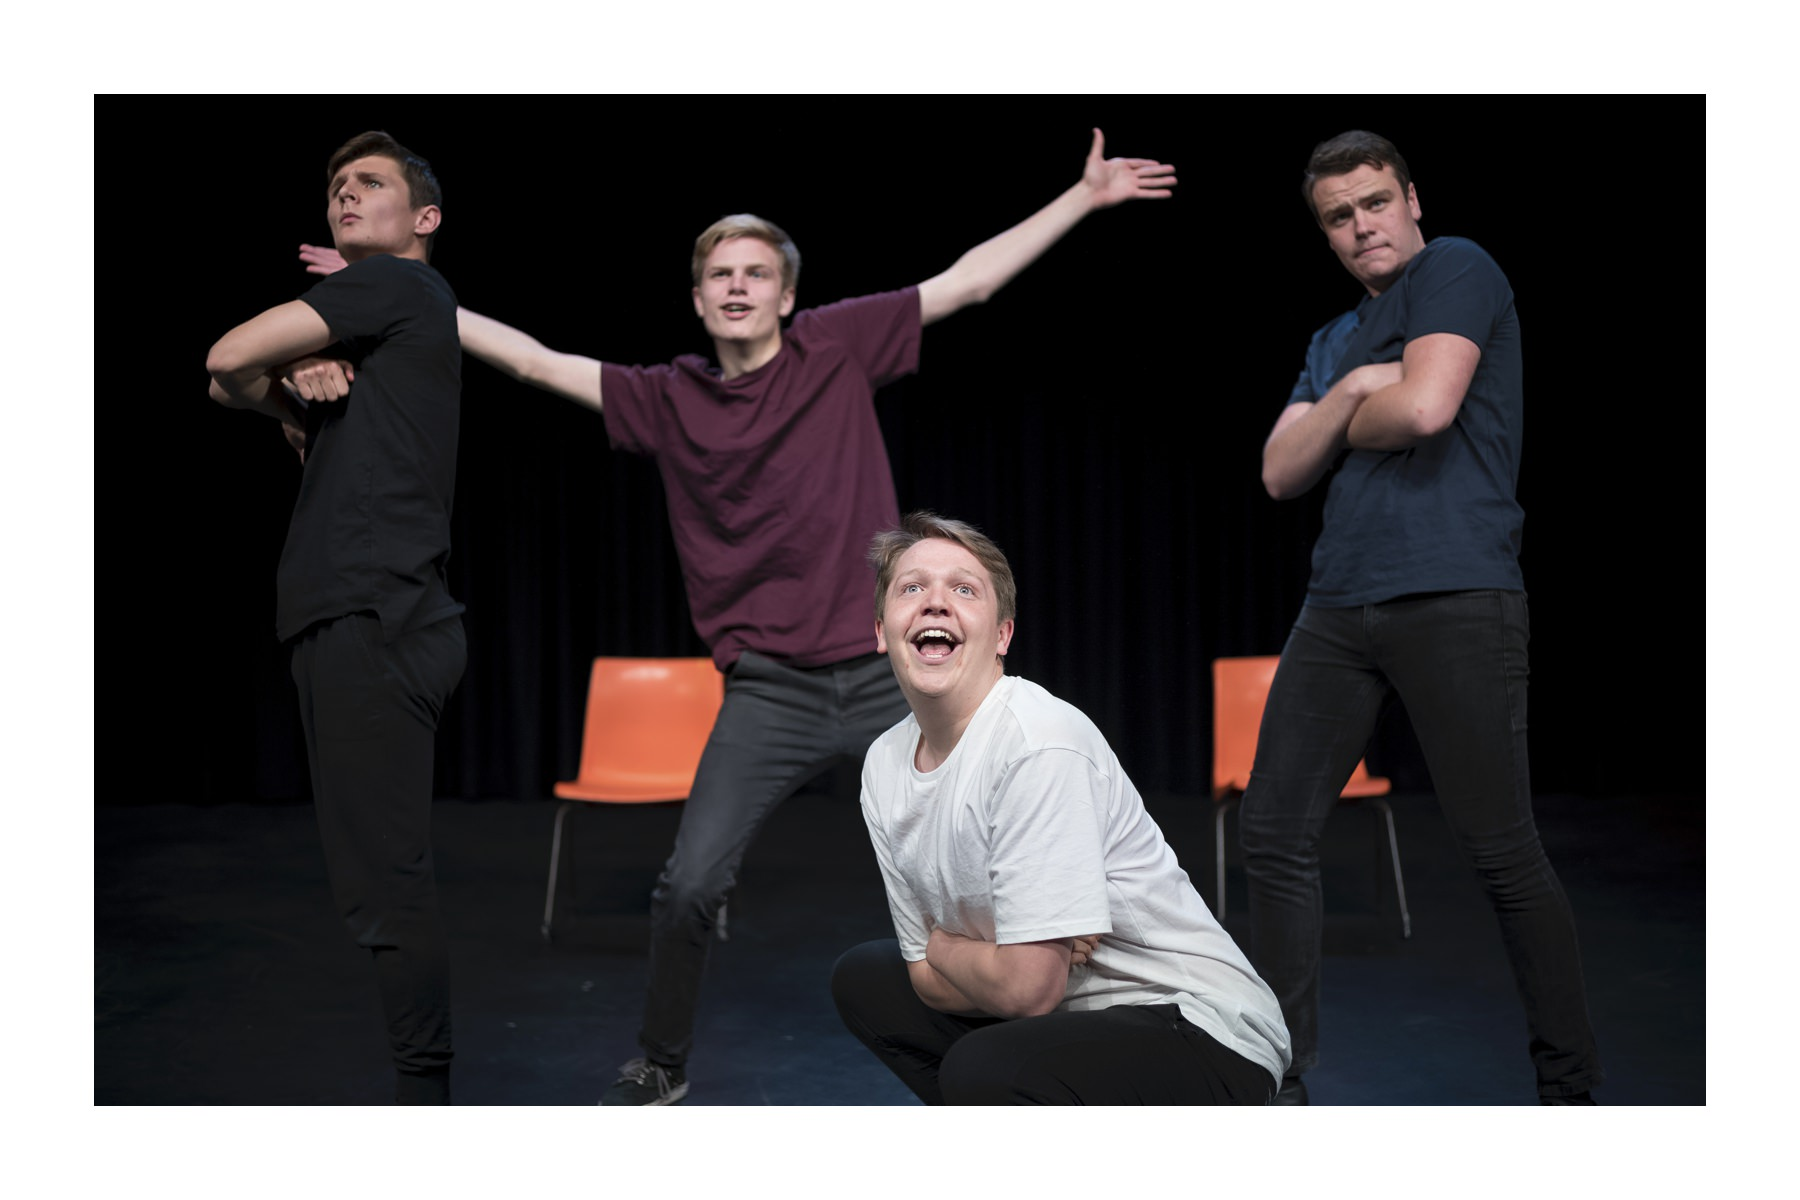 Newington College HSC Drama Showcase, 2018 - Photography by Christopher Hayles_0003.jpg